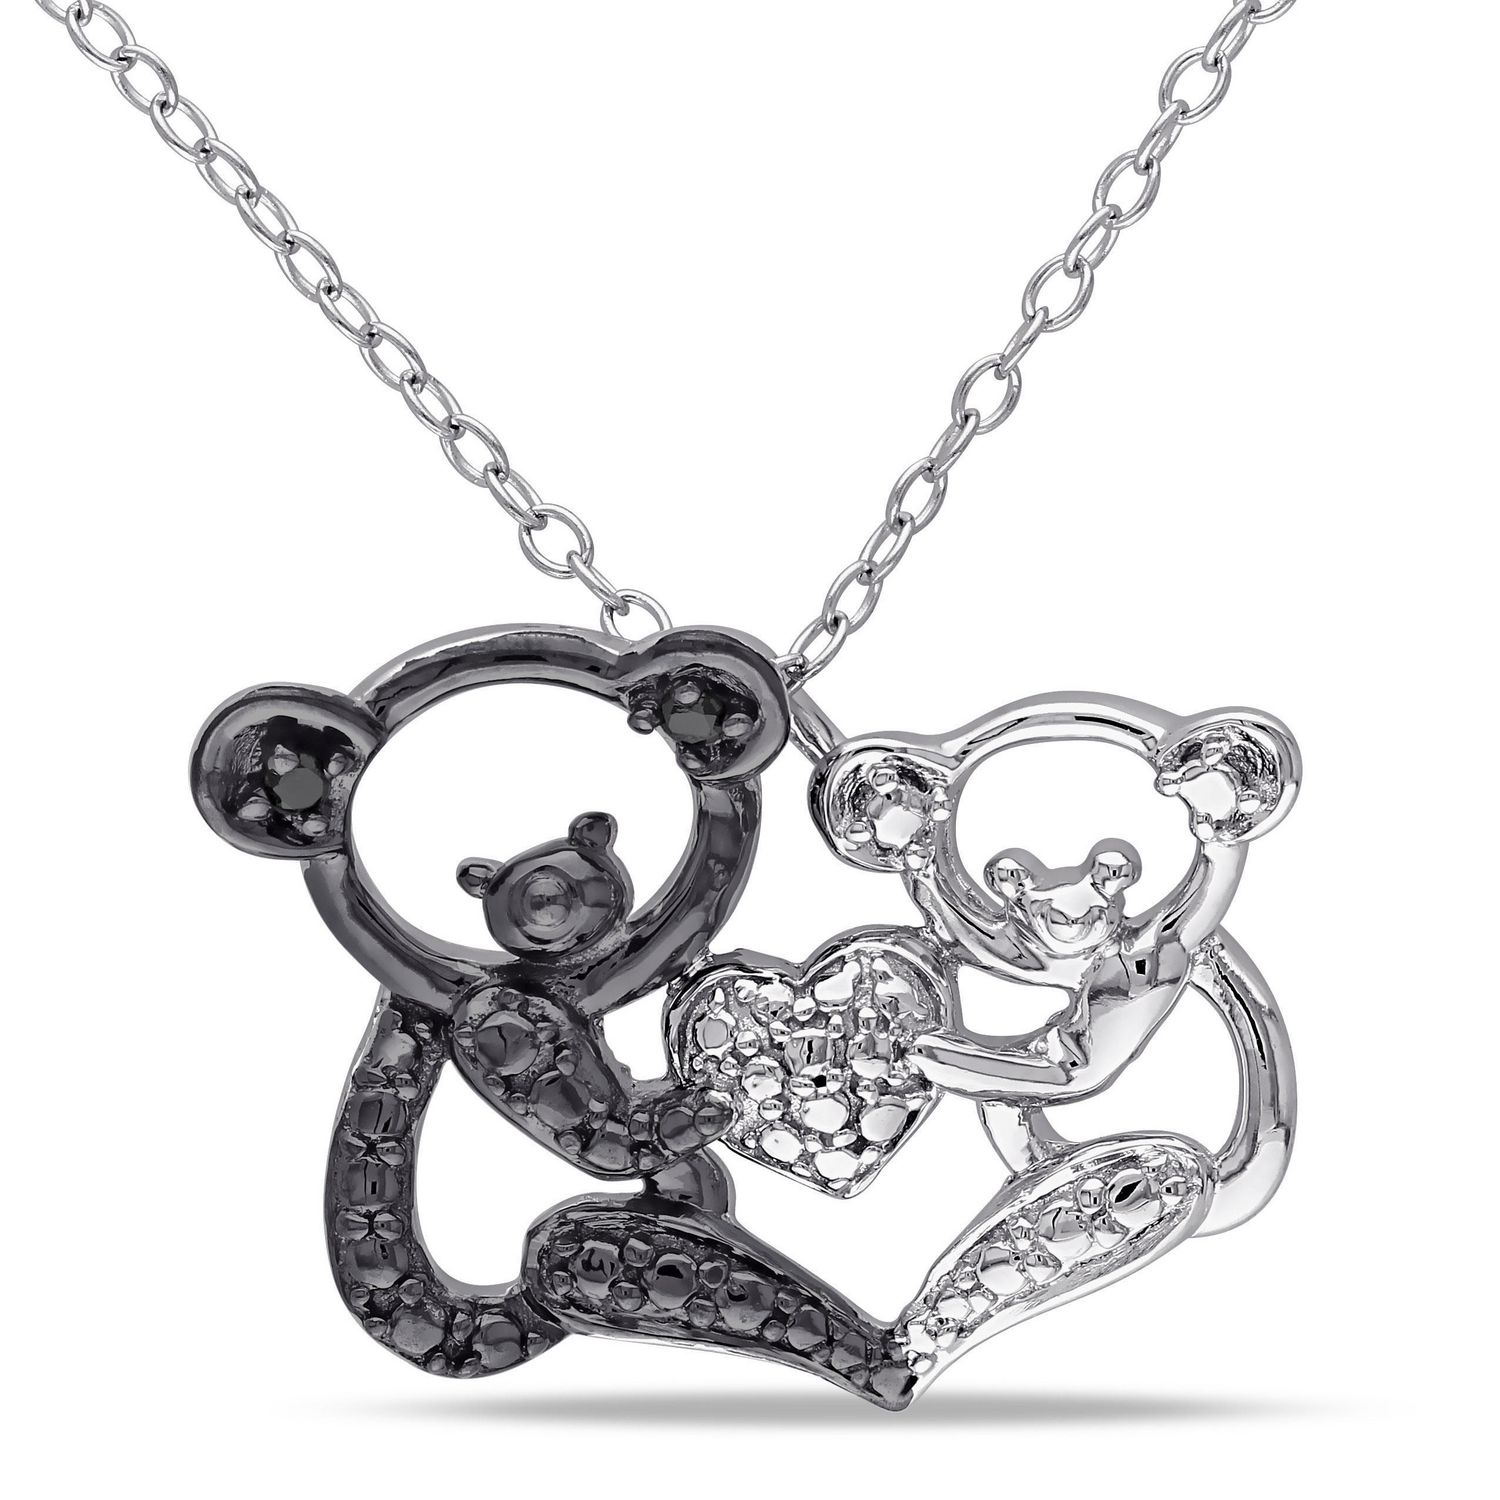 bear teddy chopard jewellery products diamond type necklaces cf pendant floating oliver necklace vendor